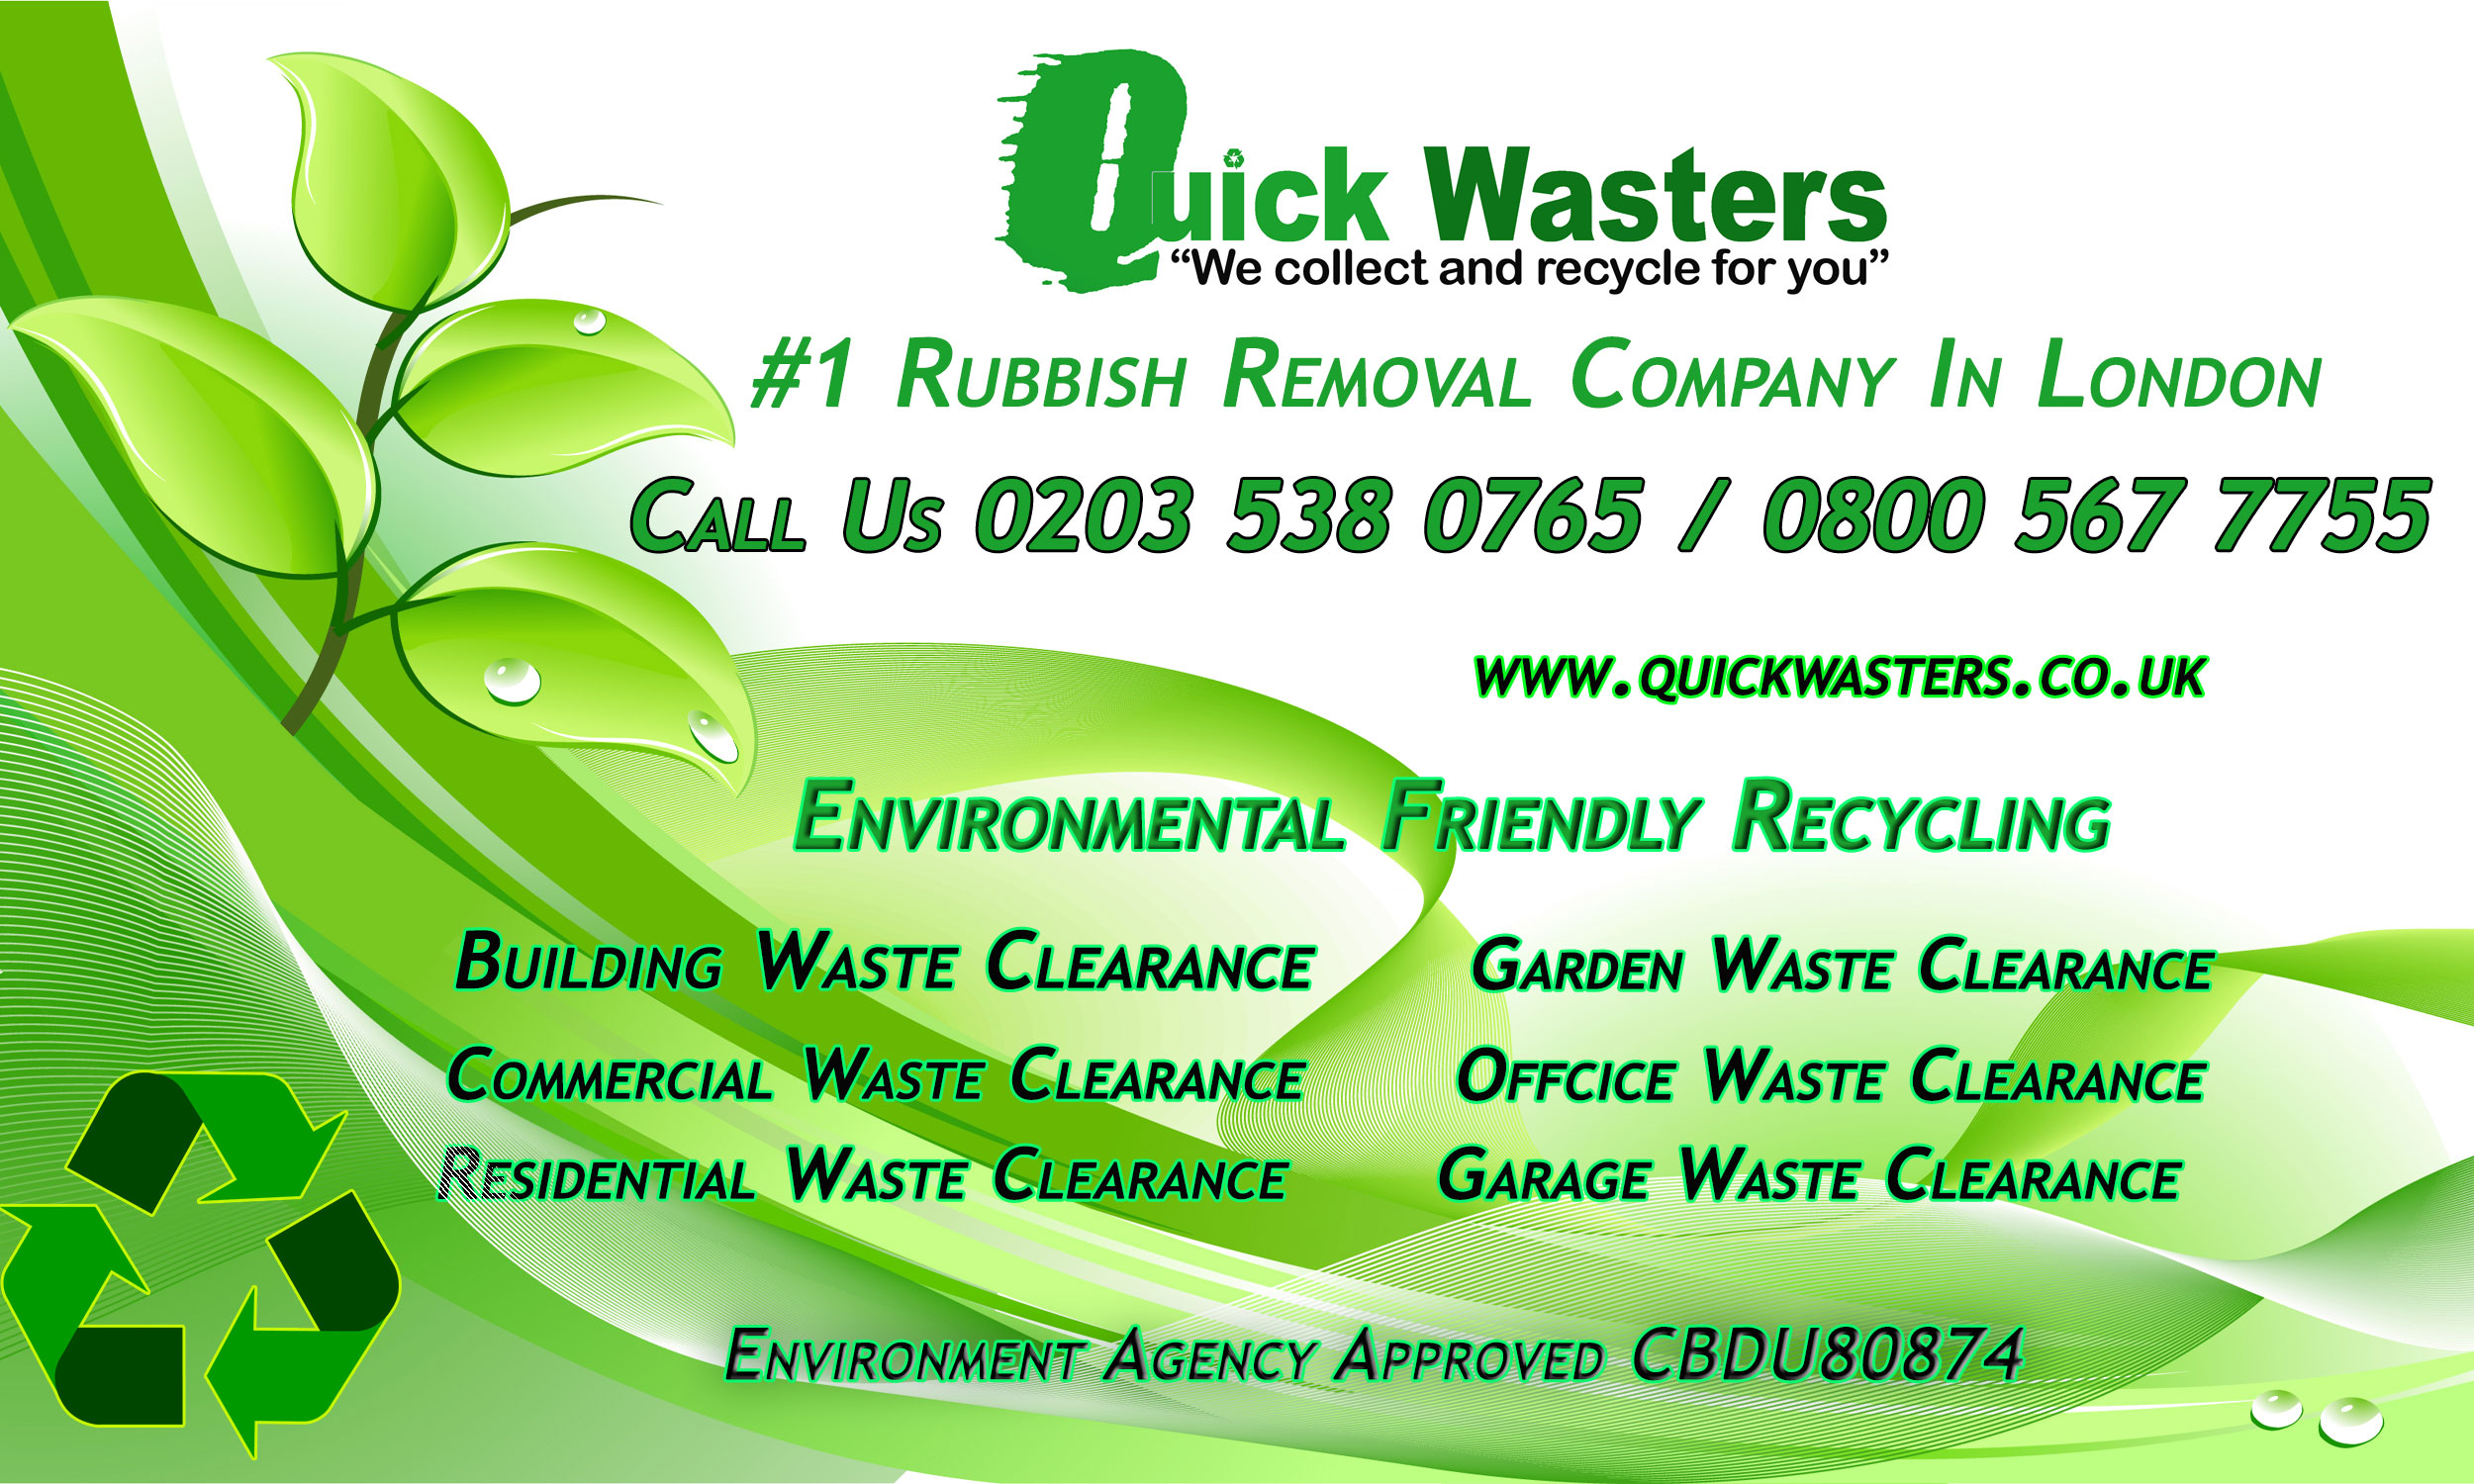 Quickwasters - Rubbish Removal London